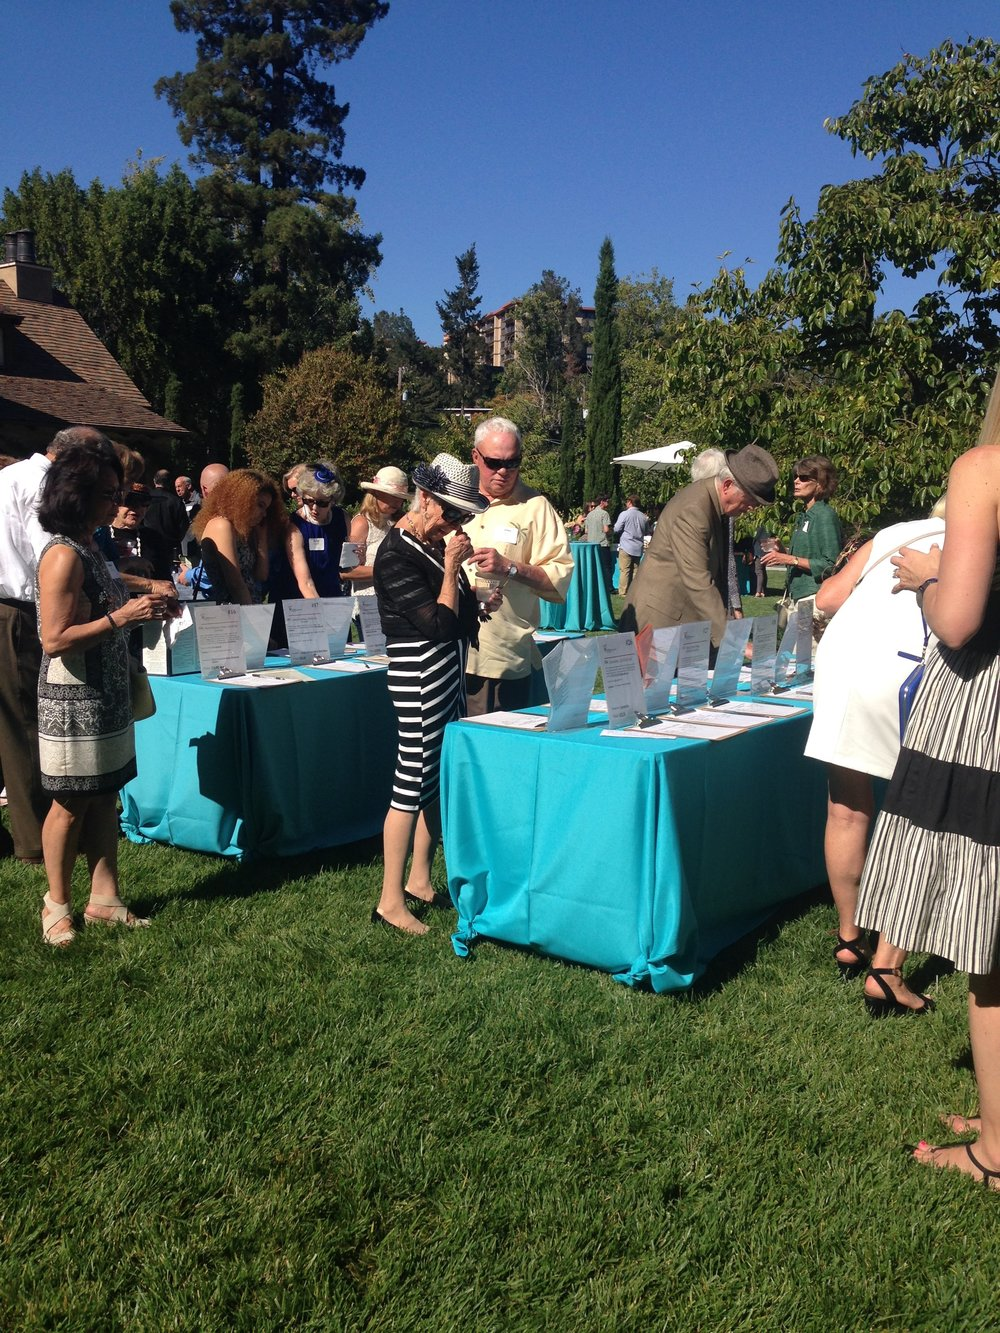 It didn't take long for the Silent Auction tables to be the most popular area to be at the Garden Party!